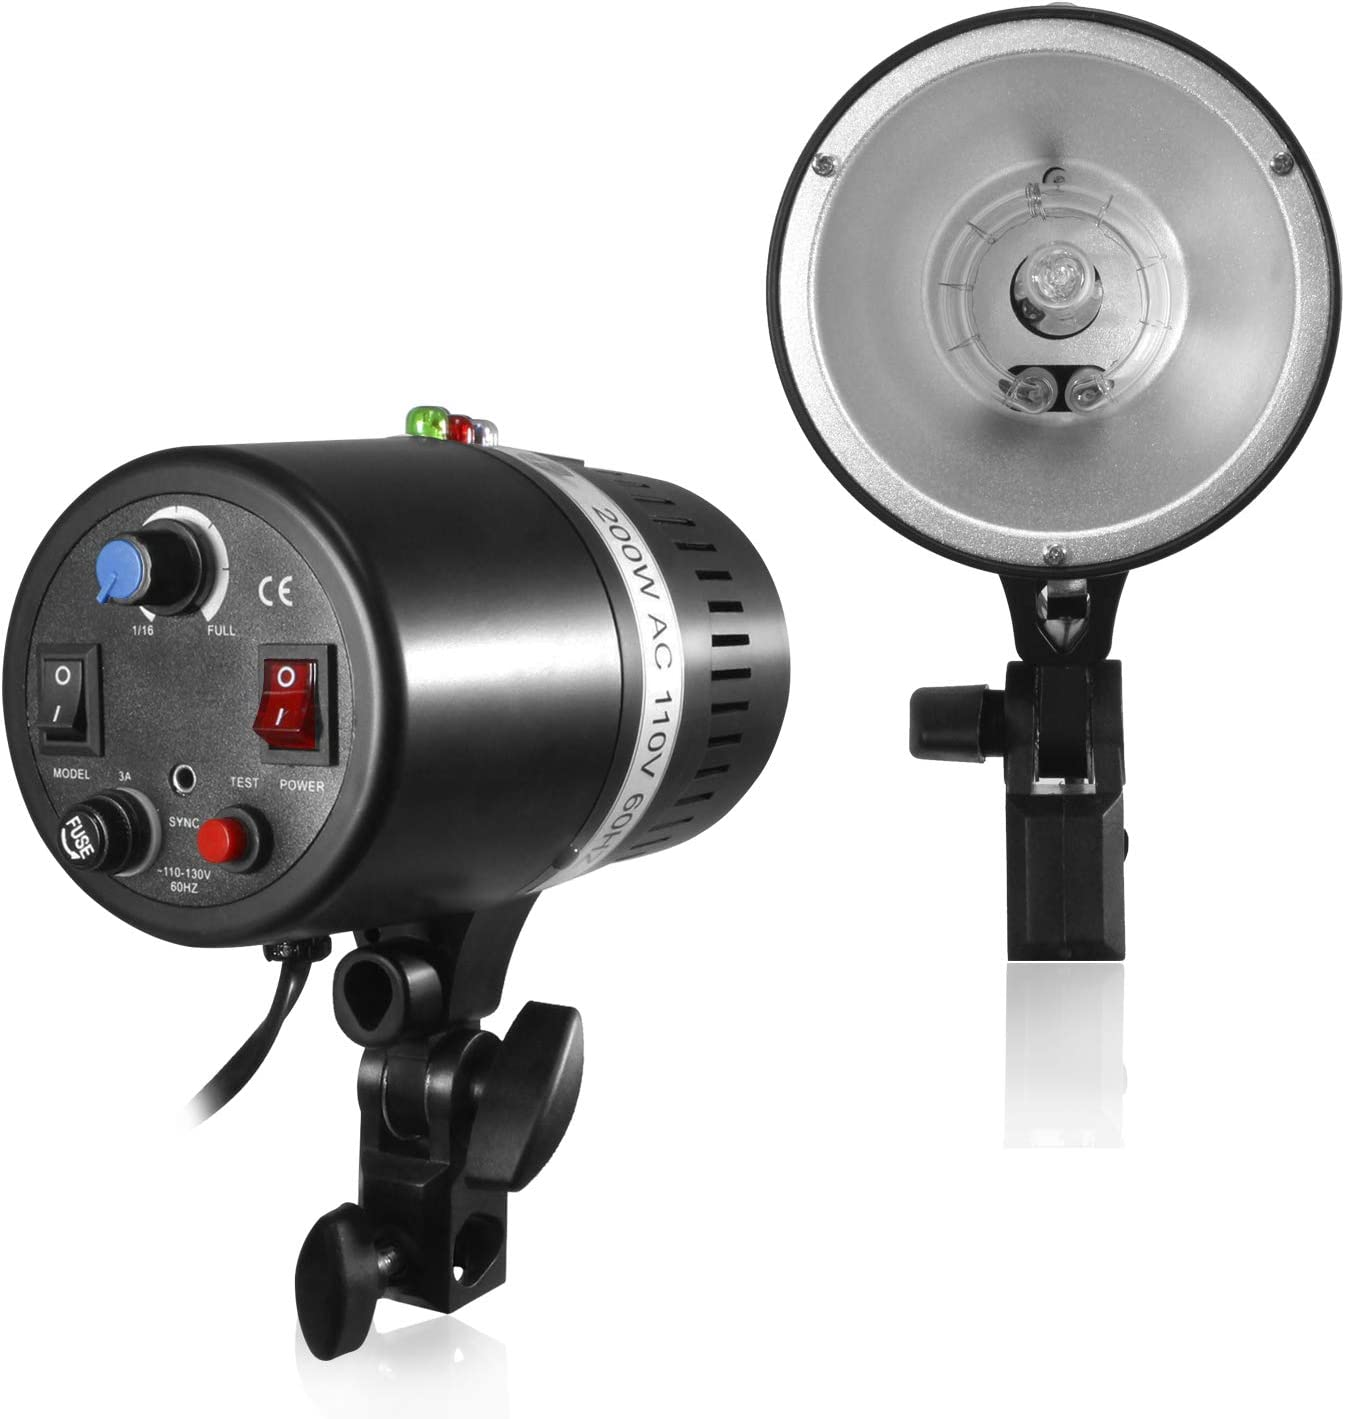 Photo Studio Test Button AGG2044 Mount on Light Stand Fuse Umbrella Input Professional Photography Use 200 Watt Studio Flash//Strobe Light Wireless Triggering Available